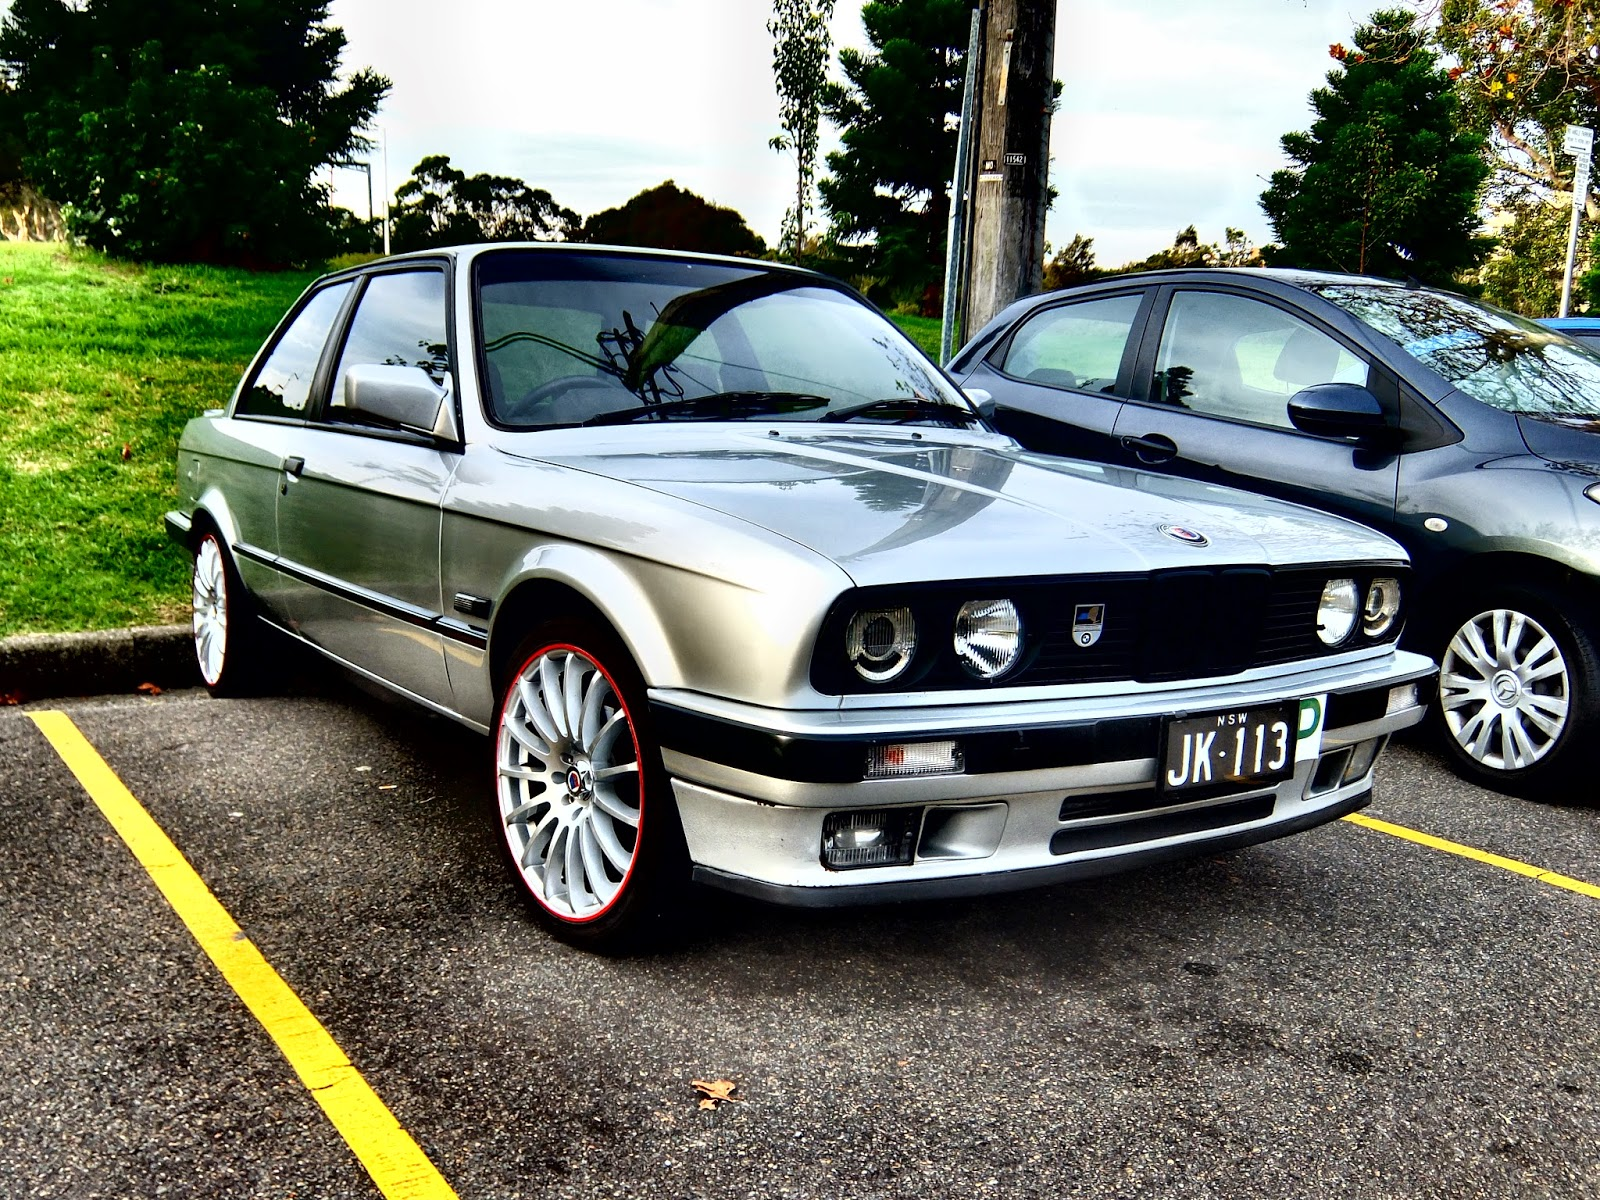 aussie old parked cars 1991 bmw alpina 325i coupe e30. Black Bedroom Furniture Sets. Home Design Ideas